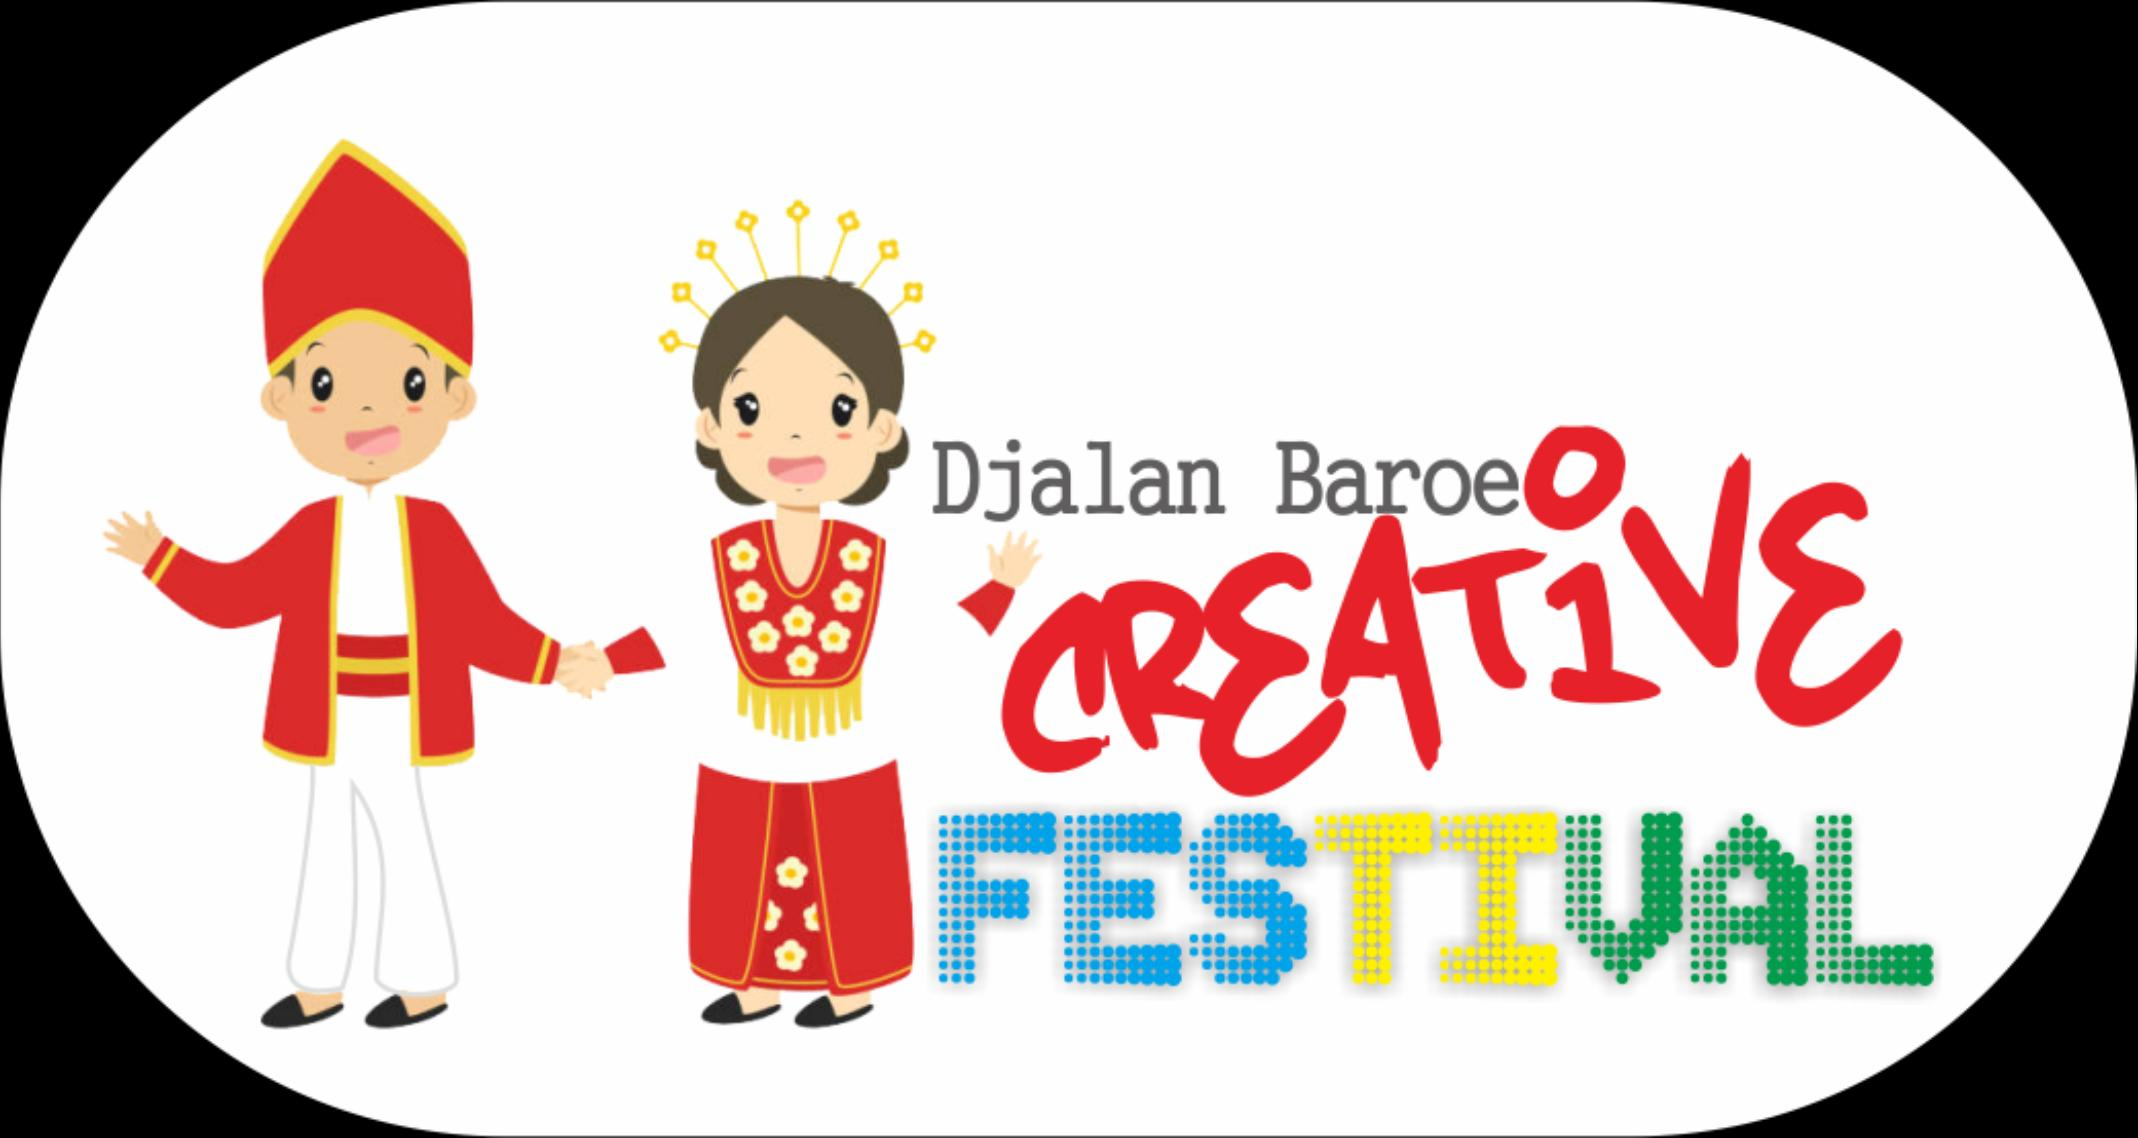 Djalan Baroe Creative Festival For Android APK Download